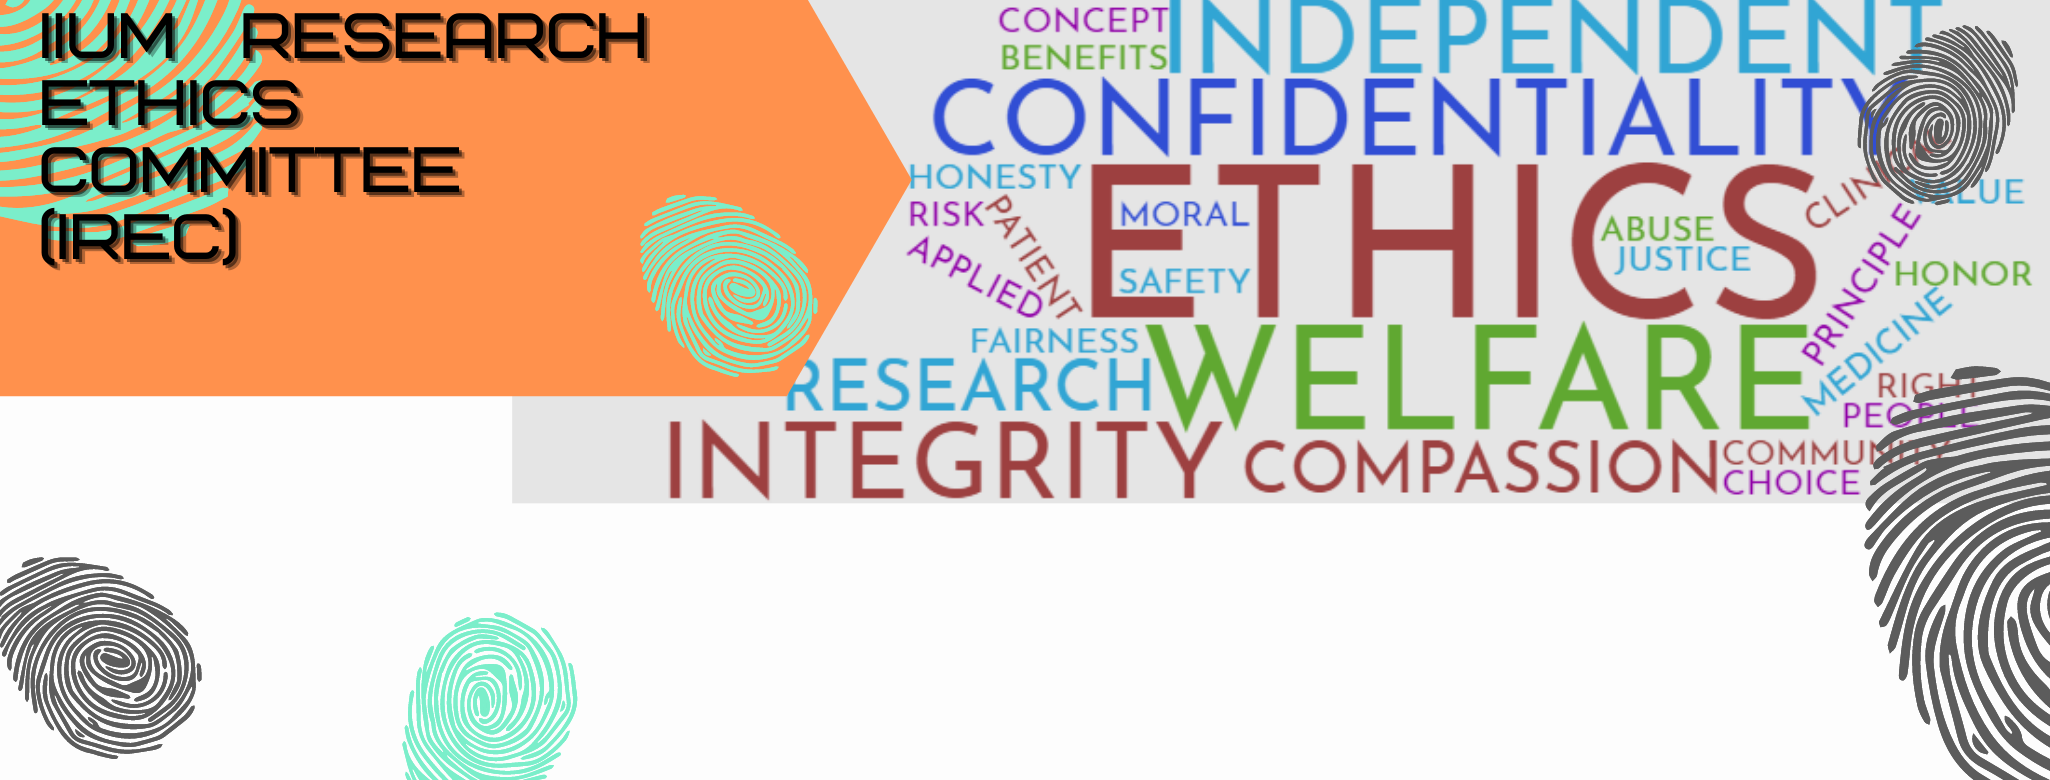 IIUM RESEARCH ETHICS COMMITTEE (IREC)